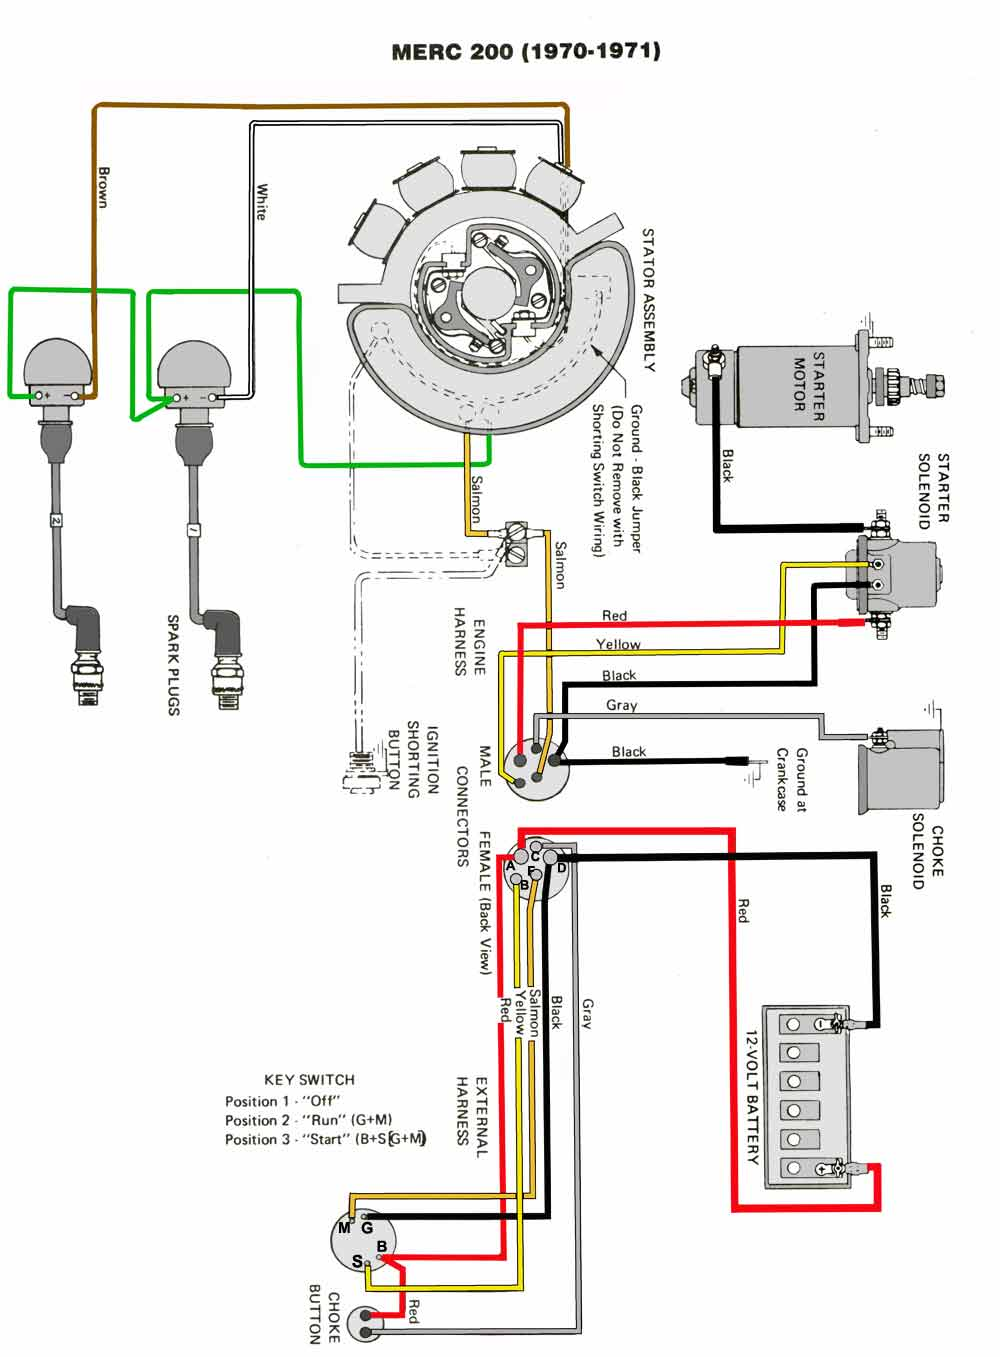 nissan outboard motor parts diagram automotivegarage org nissan 50 outboard engine diagram 55 nissan outboard wiring harness basic guide diagram